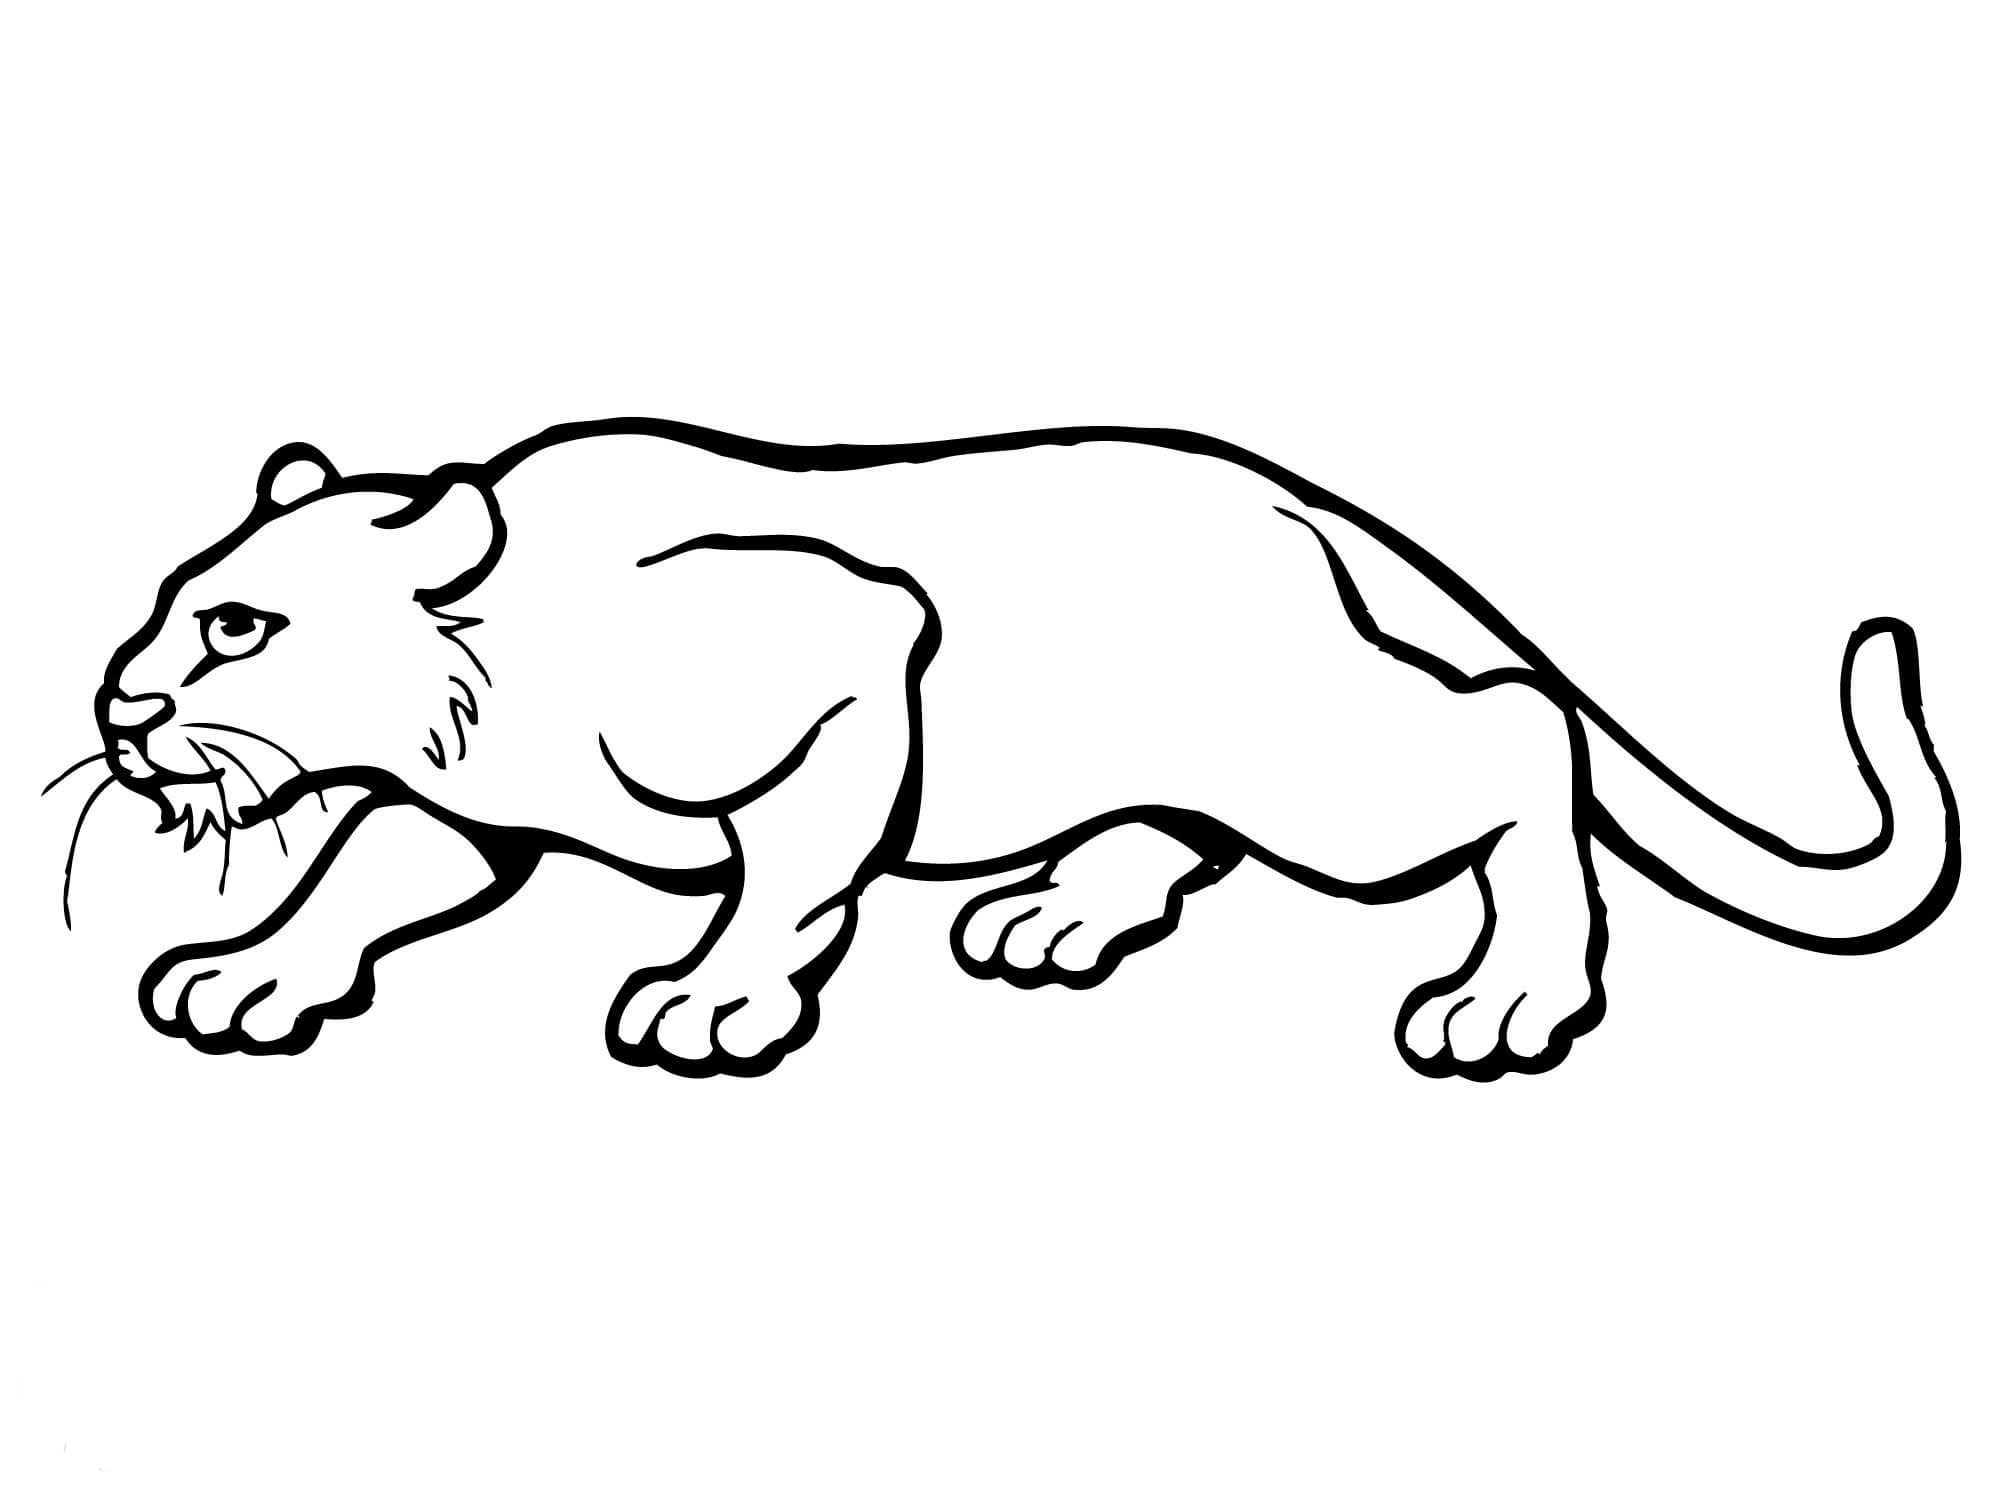 Paclii clipart graphic black and white download Crouching cat lineart - 15 linearts for free coloring on theivrgroup ... graphic black and white download